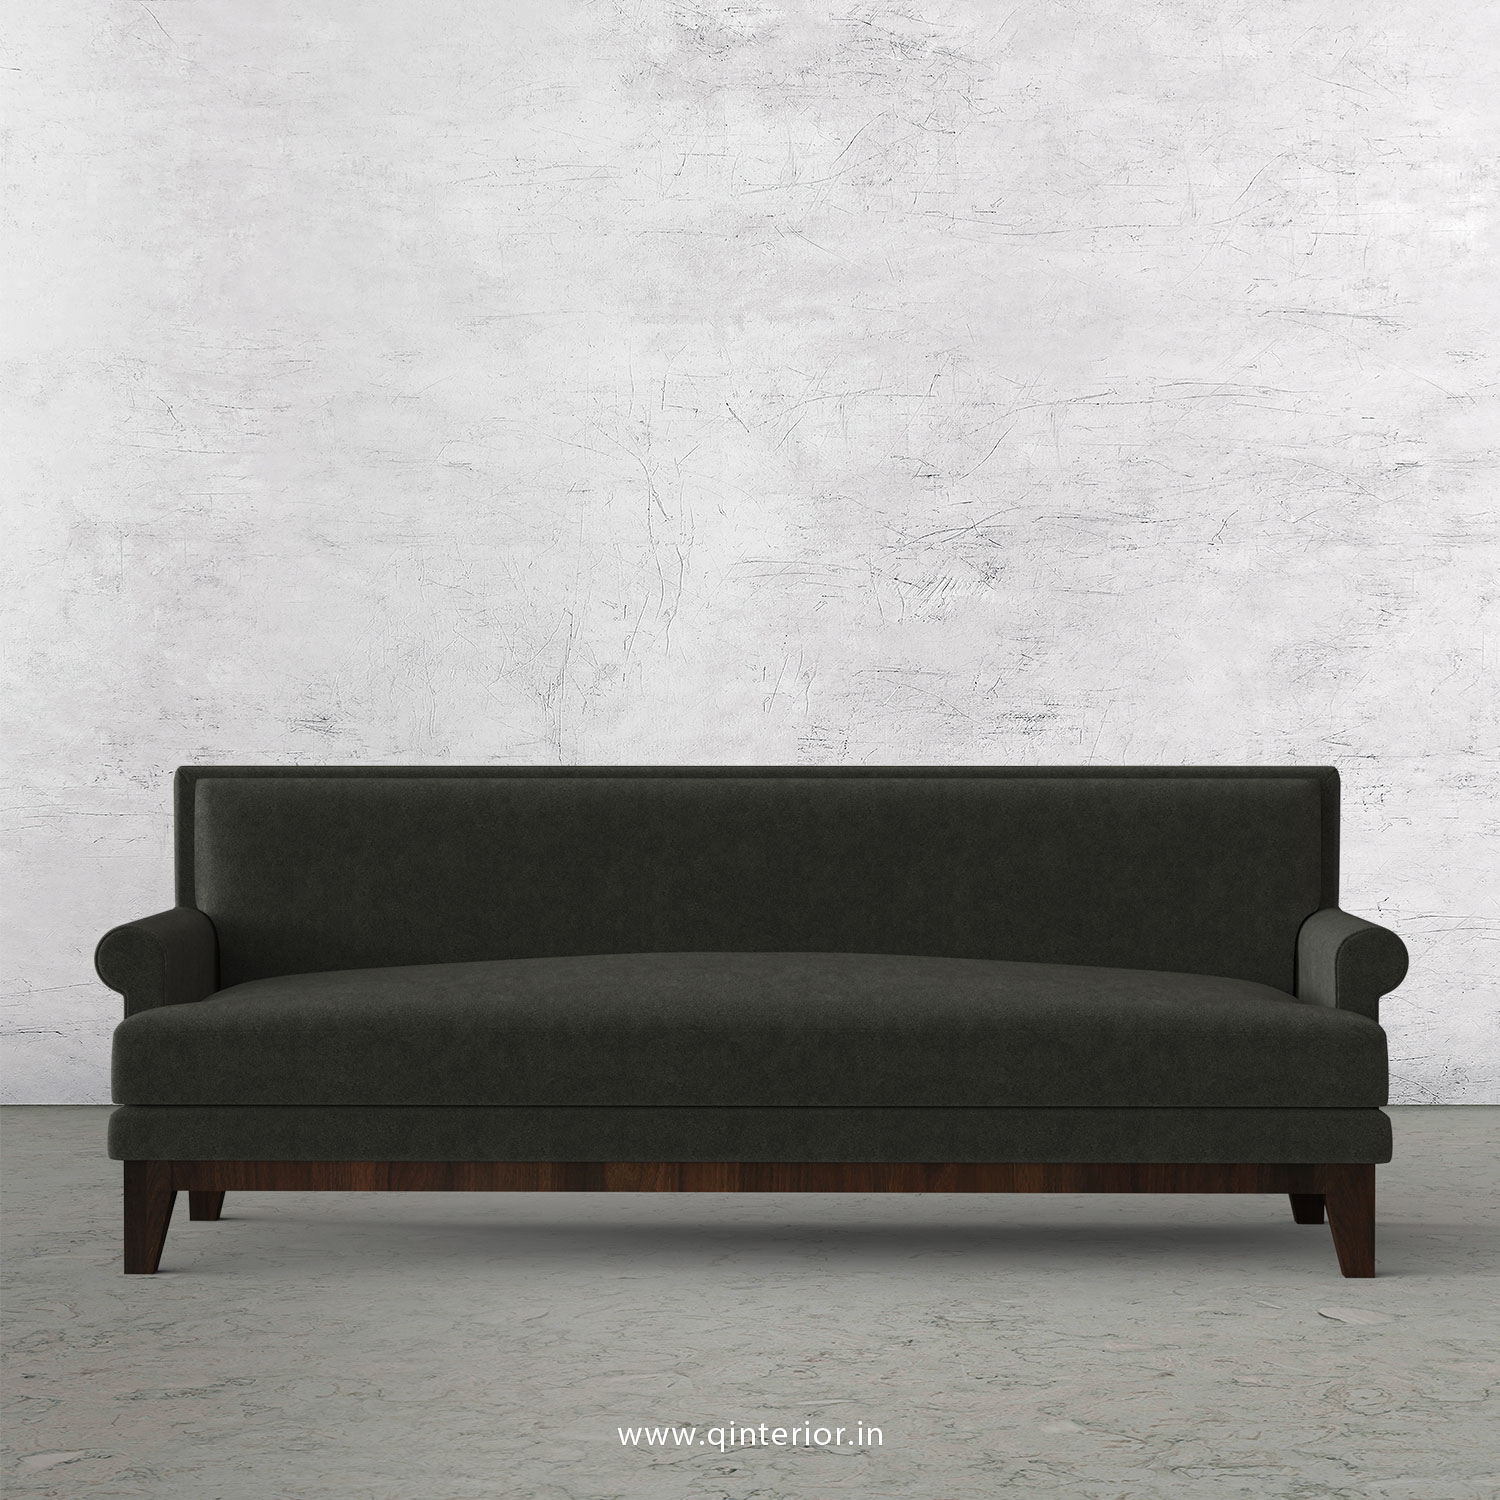 Aviana 3 Seater Sofa in Velvet Fabric - SFA001 VL15